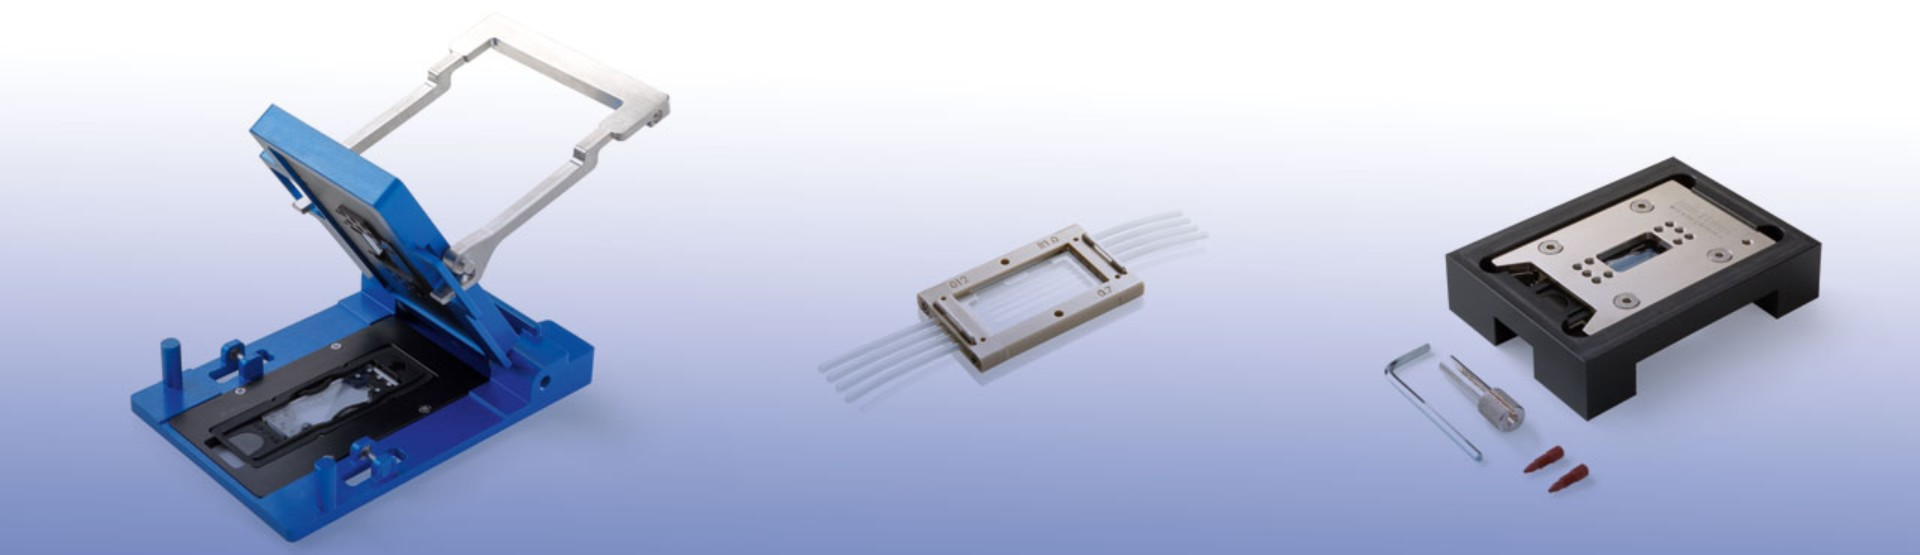 Overview of Micronit's chip holders available in the web store